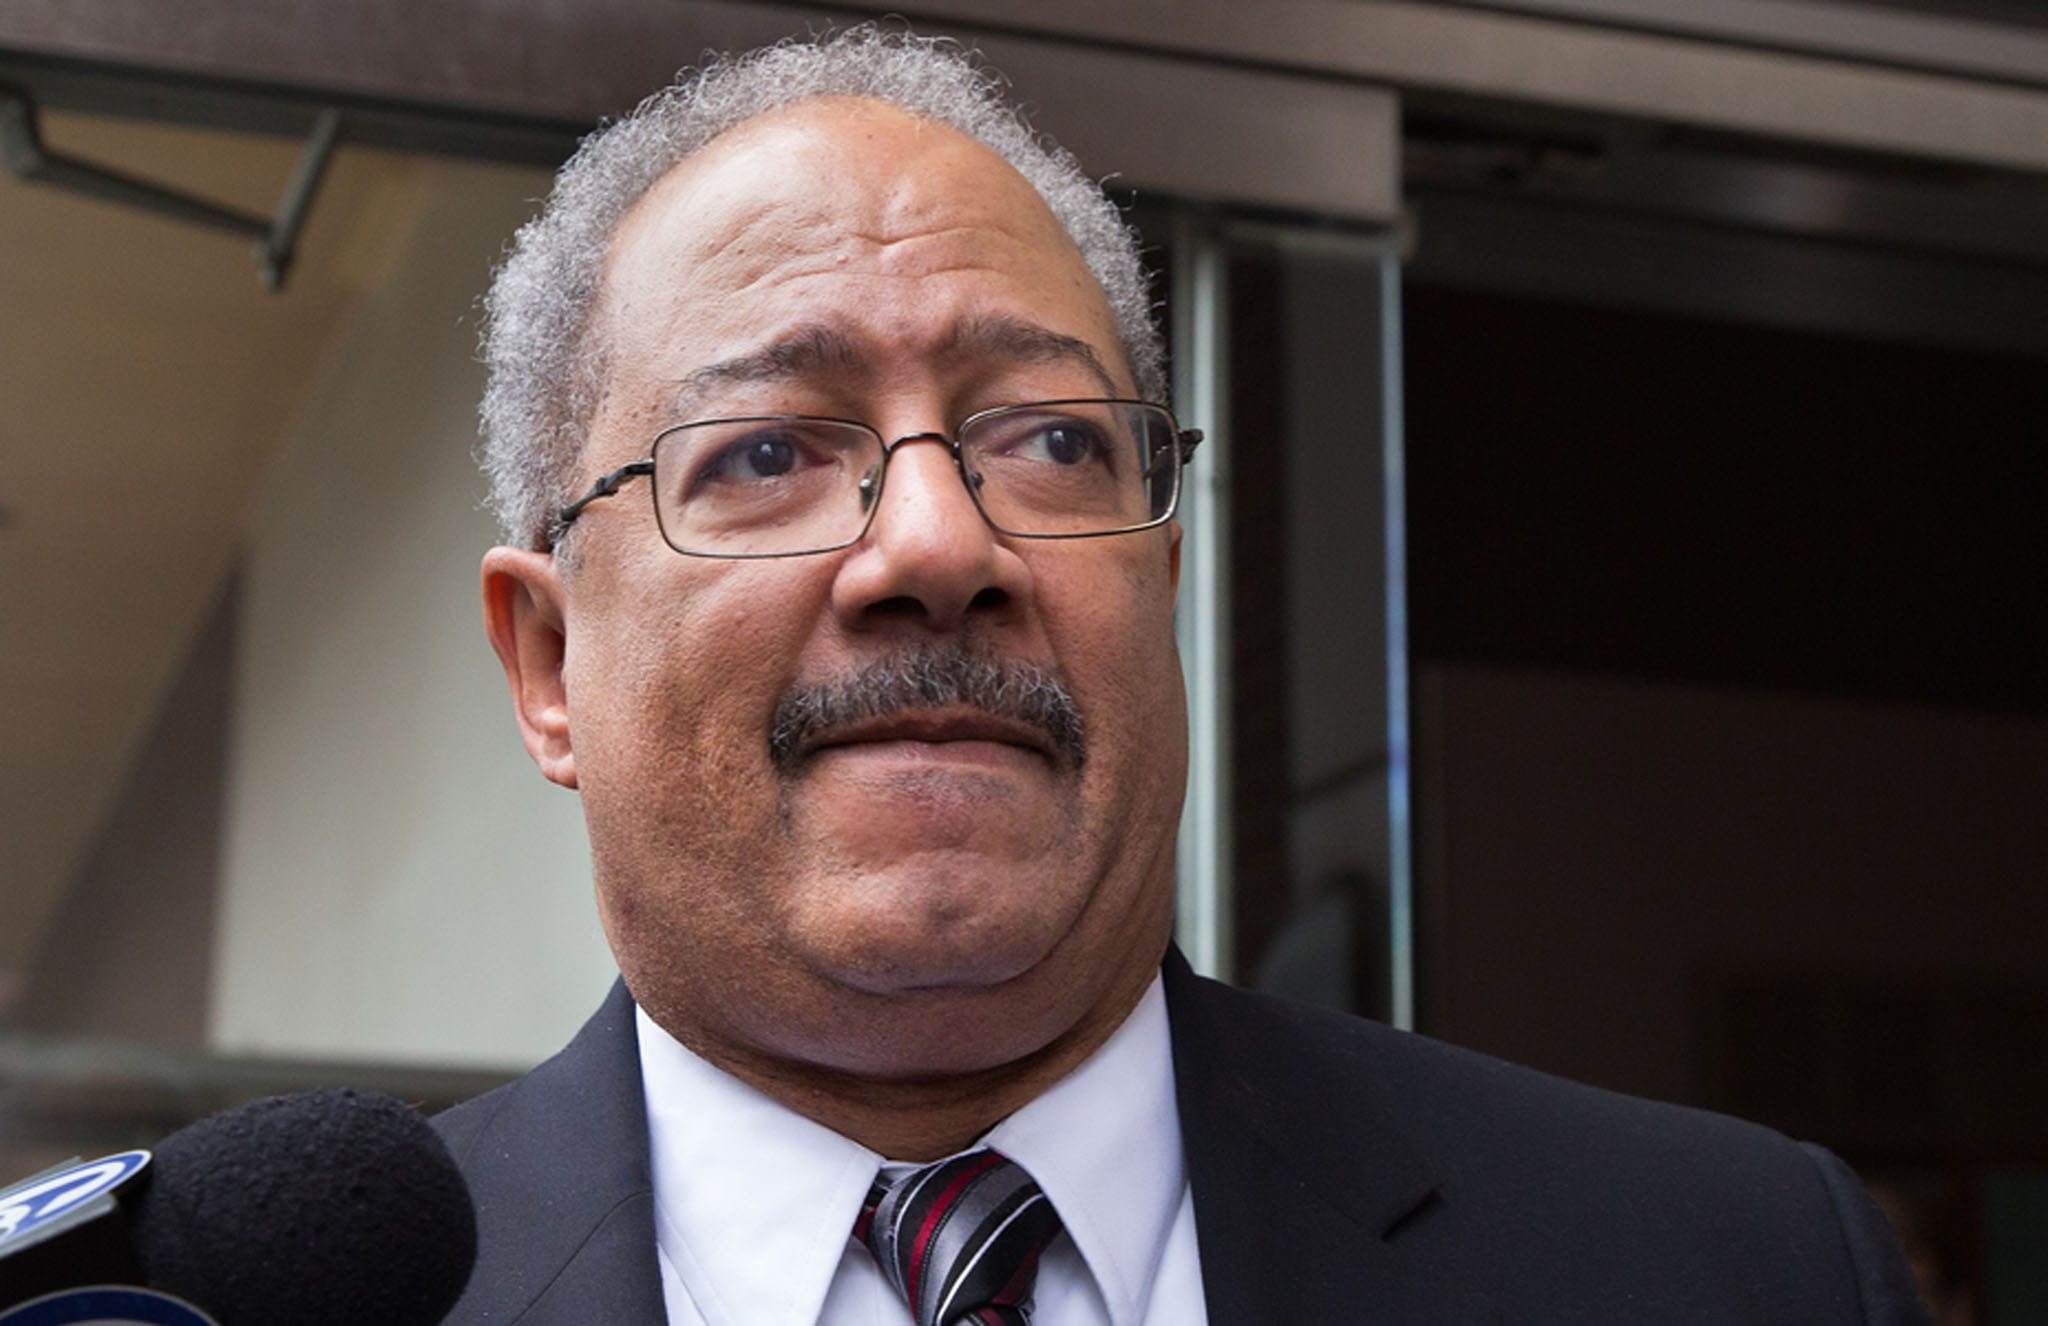 Former Congressman Chaka Fattah exits federal court after being sentenced to 10 years in prison, in Philadelphia, on December 12, 2016. JESSICA GRIFFIN / Staff Photographer